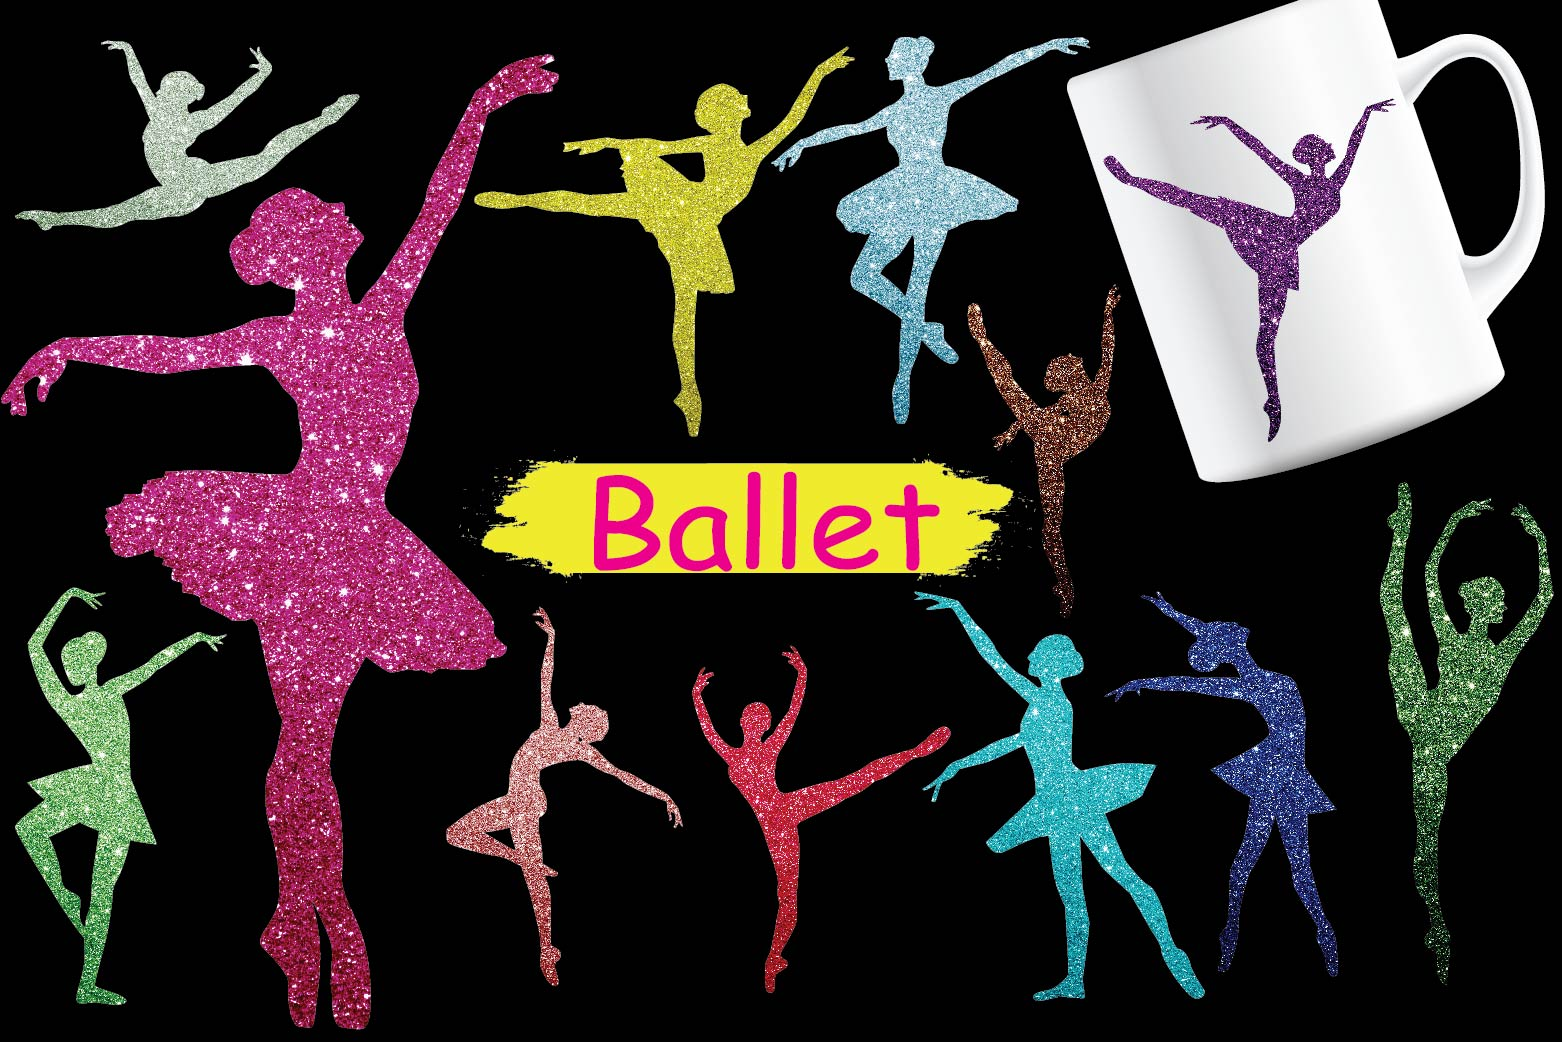 Download Free Ballet Clipart Graphic By Design Haul Creative Fabrica for Cricut Explore, Silhouette and other cutting machines.